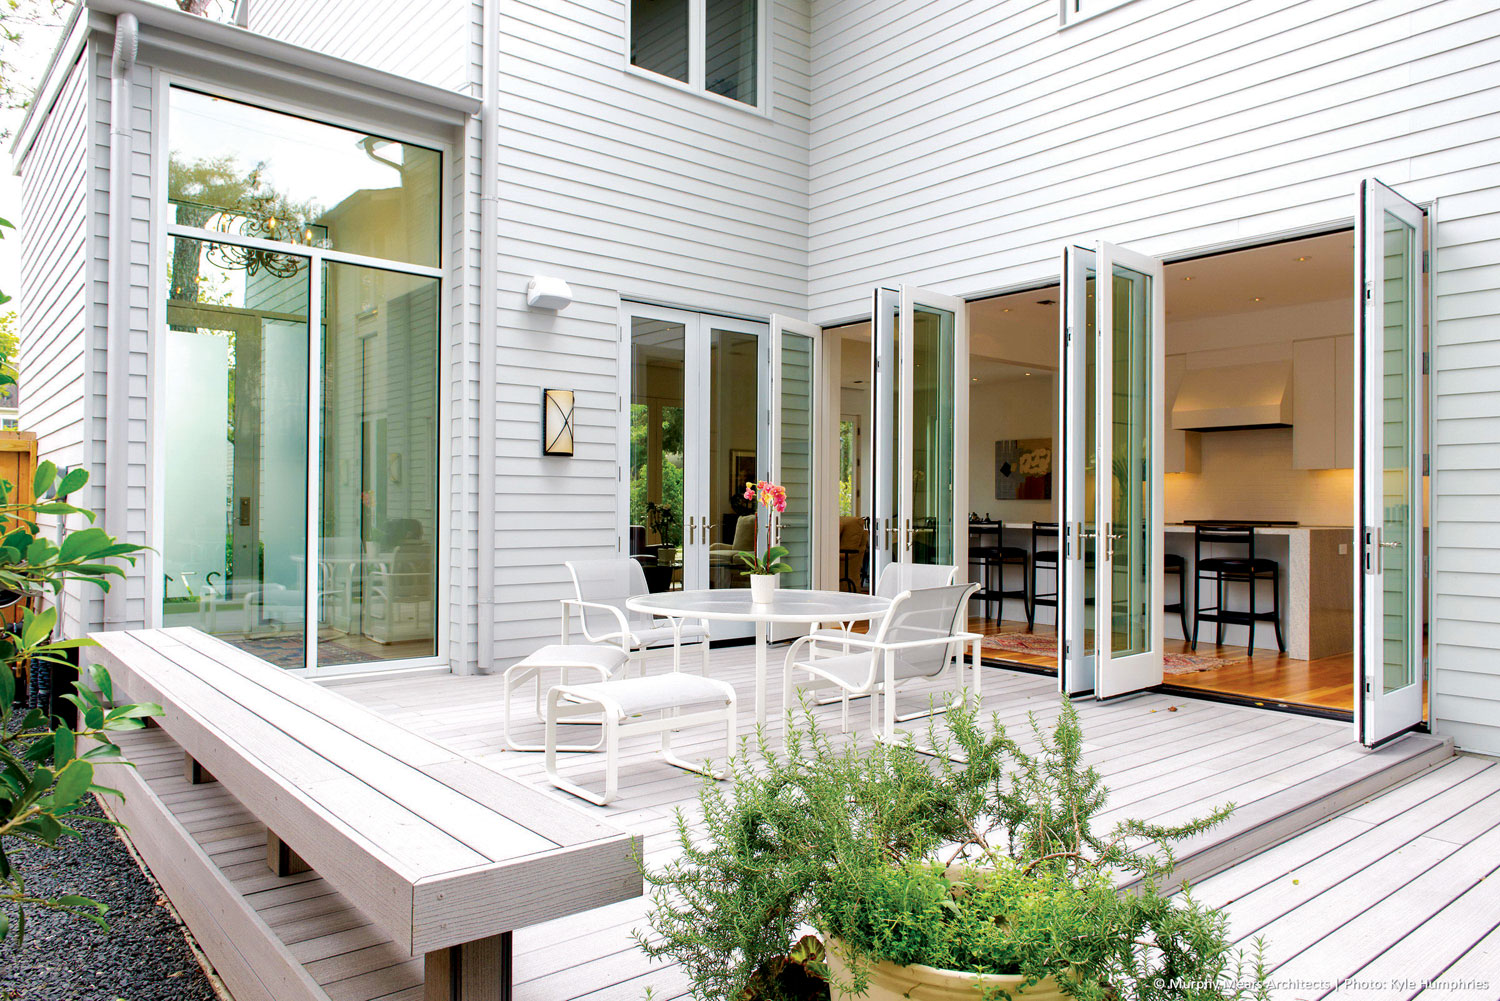 Using the french doors in houses creates a very beautiful connection between the exterior and interior